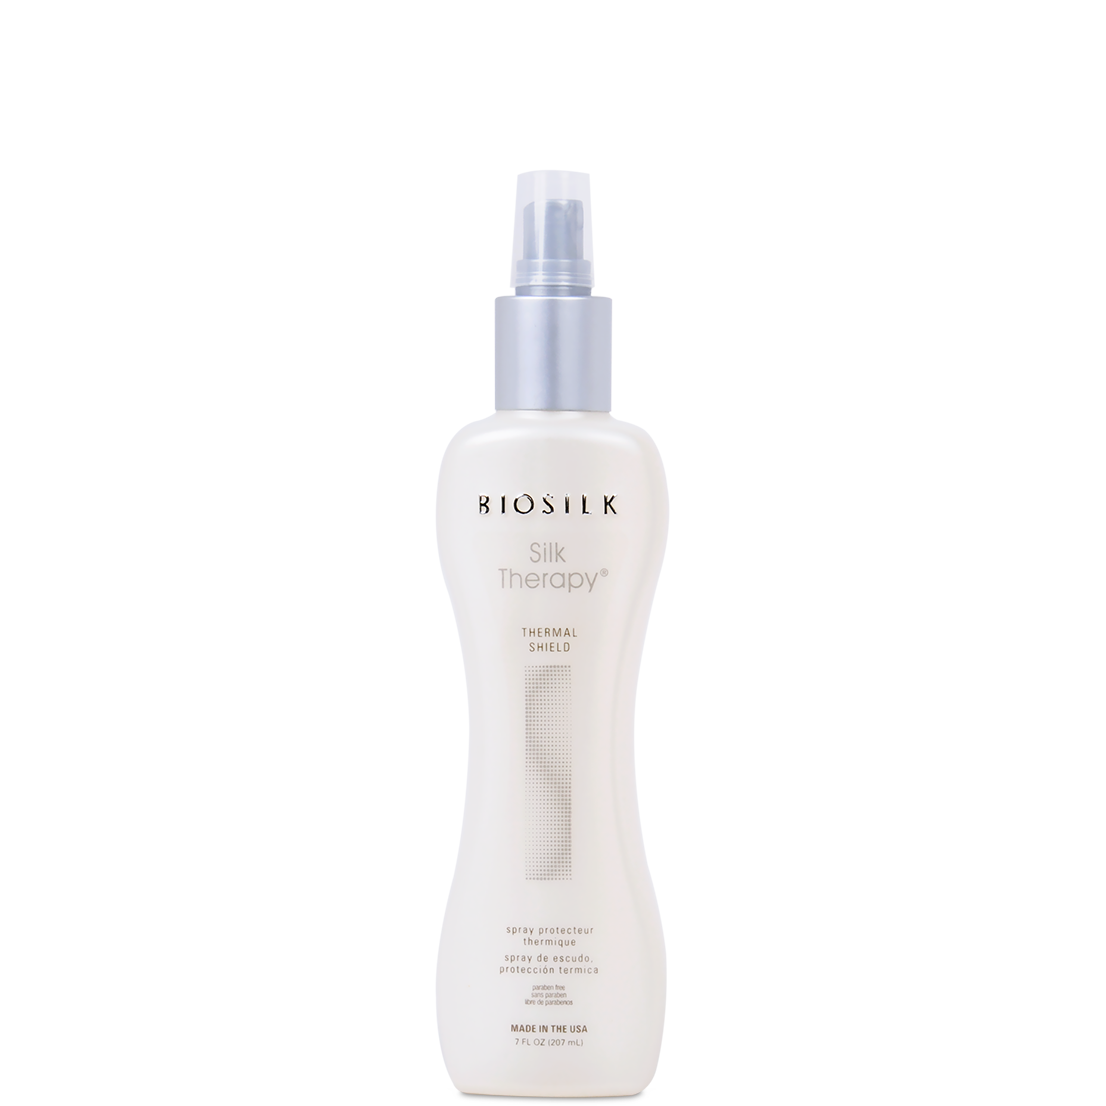 BioSilk Thermal Protection Spray, Atlanta Lifestyle Magazine – Featured BioSilk Thermal Shield Protection Spray